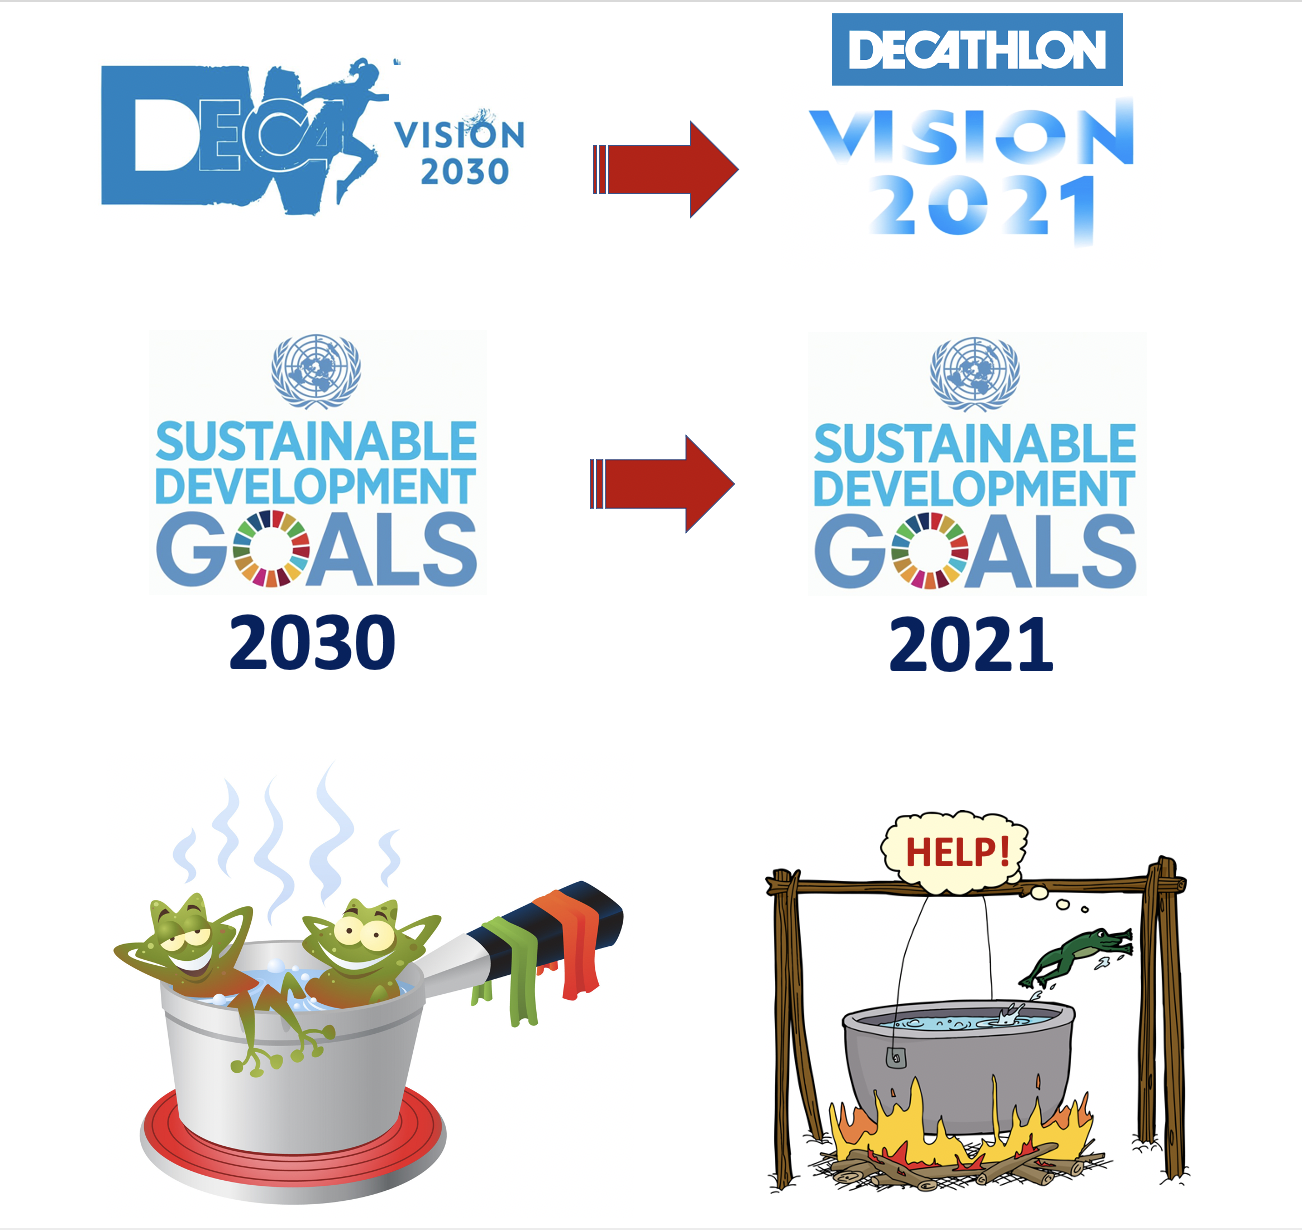 Given the dual socio-ecological urgency, the UN should rename its 2030 SDGs as 2021 SDGs